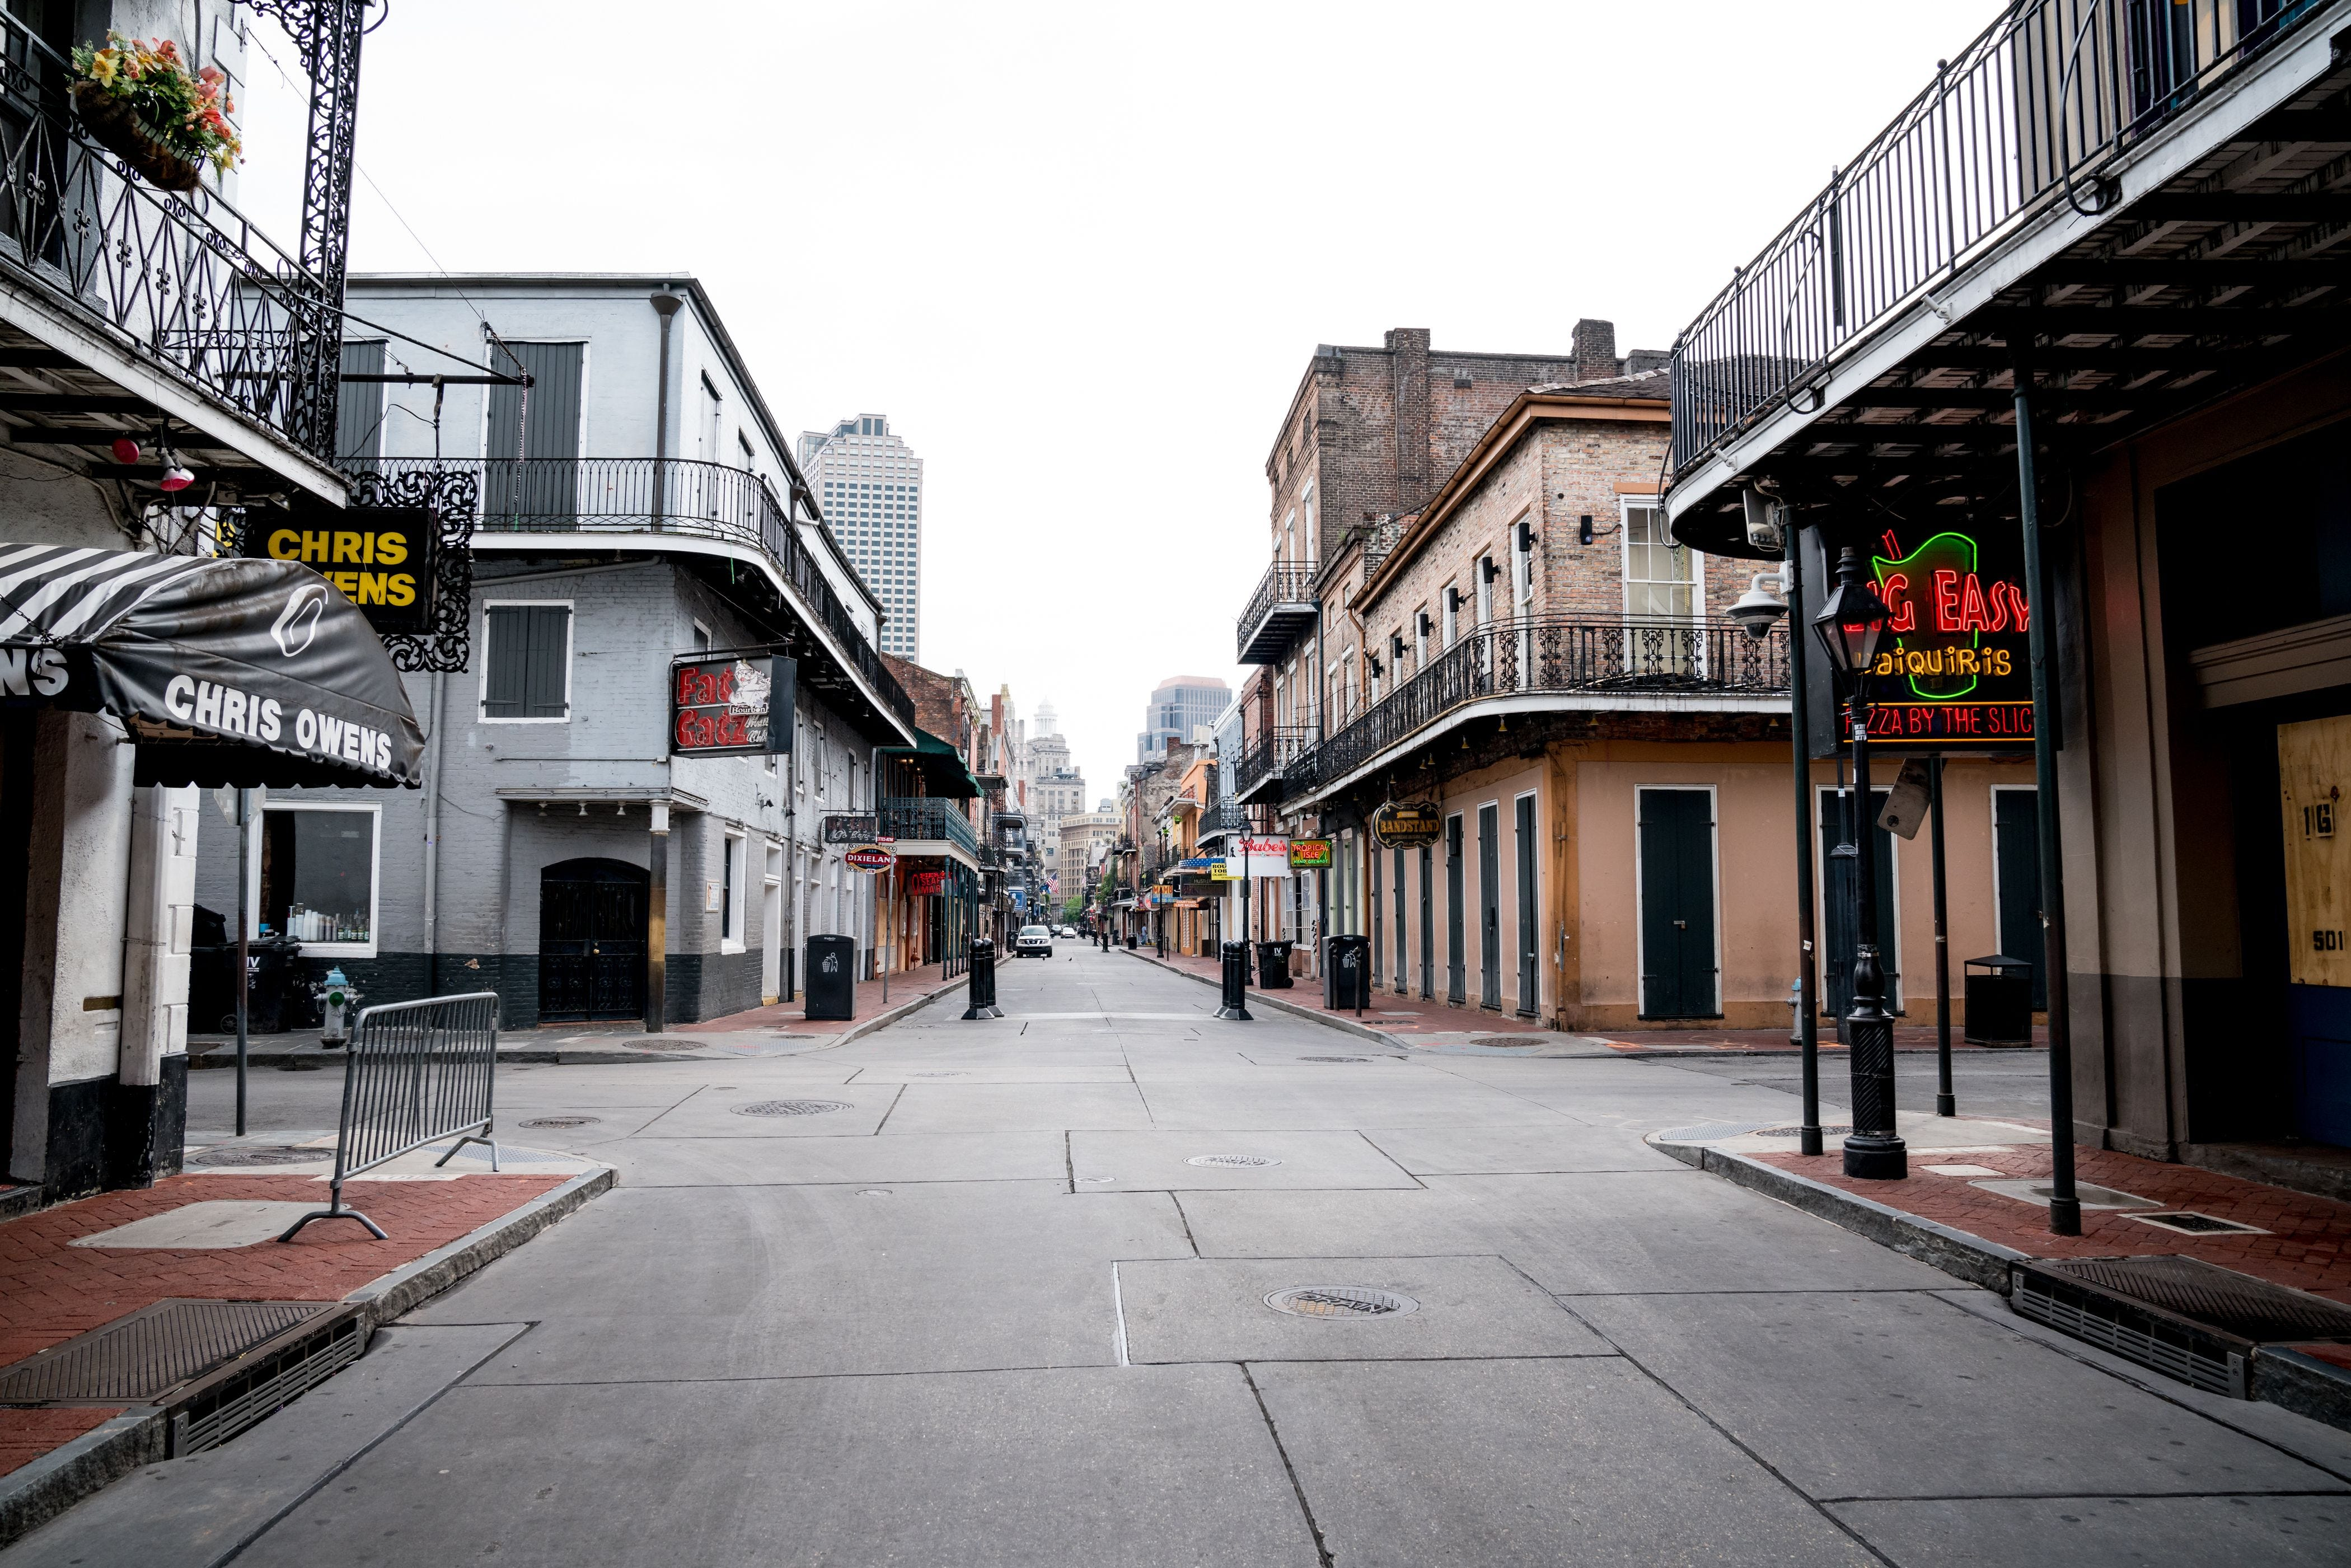 Typically filled with people, Bourbon Street in New Orleans is nearly empty on the first day of Jazz Fest 2020 on April 23.